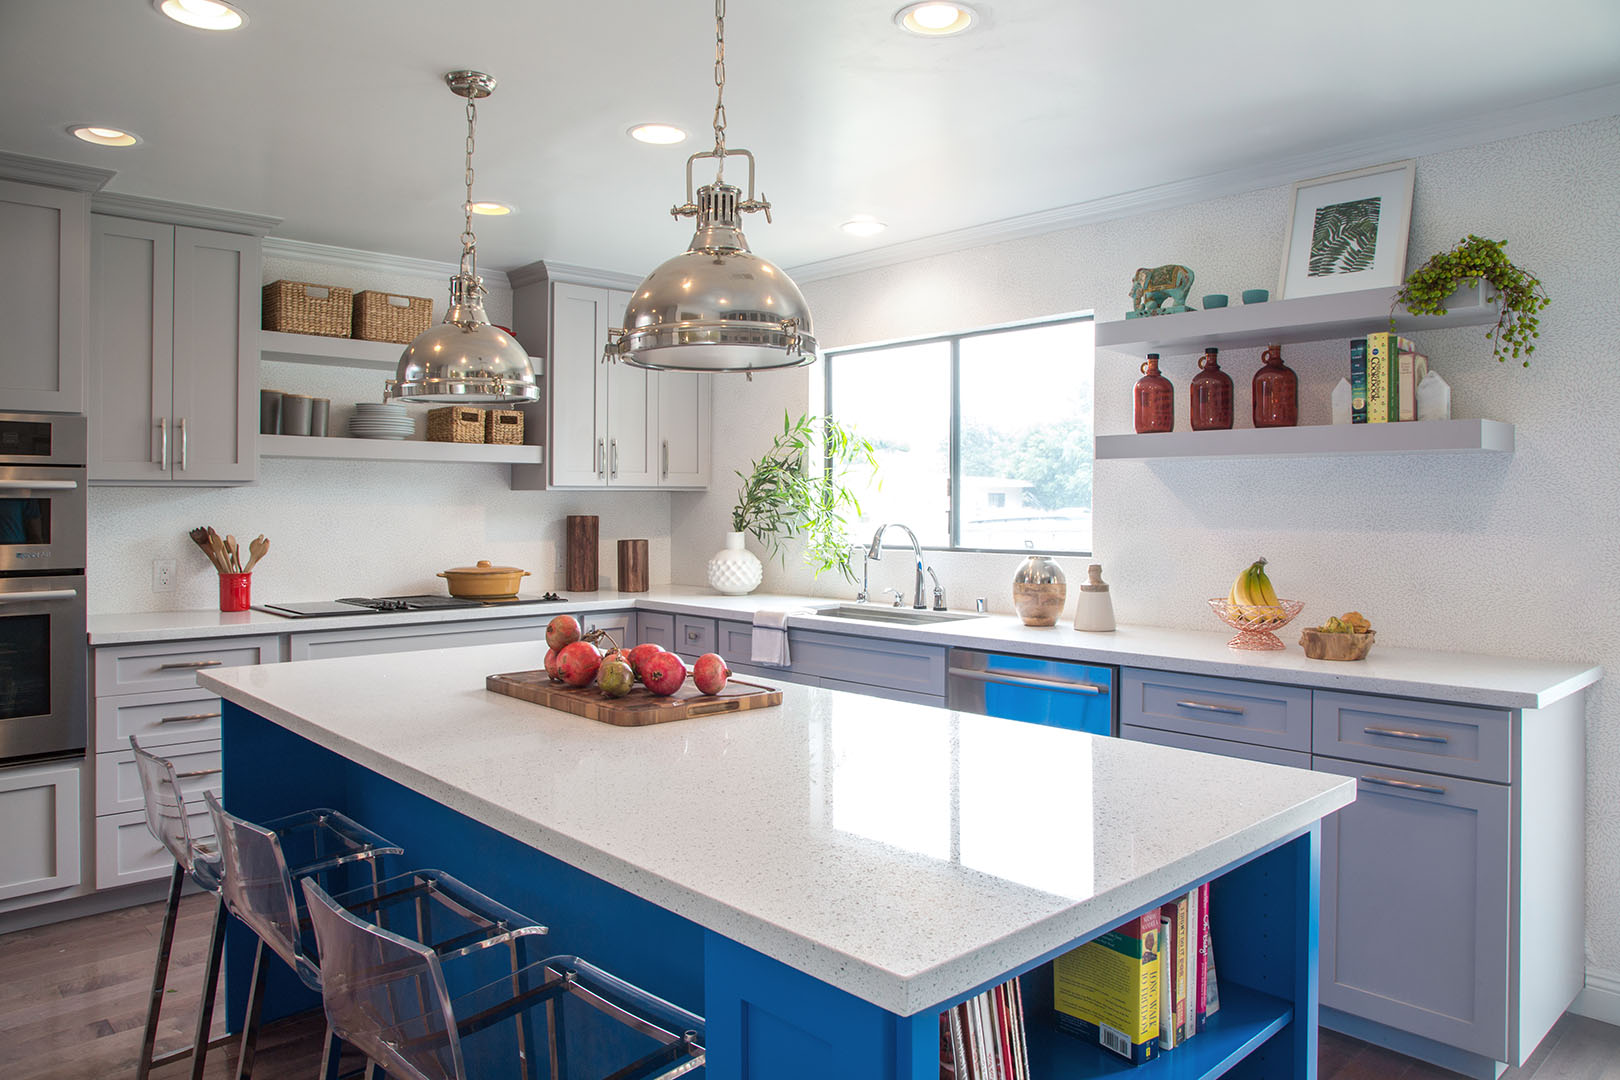 Kitchen interior design Oakland